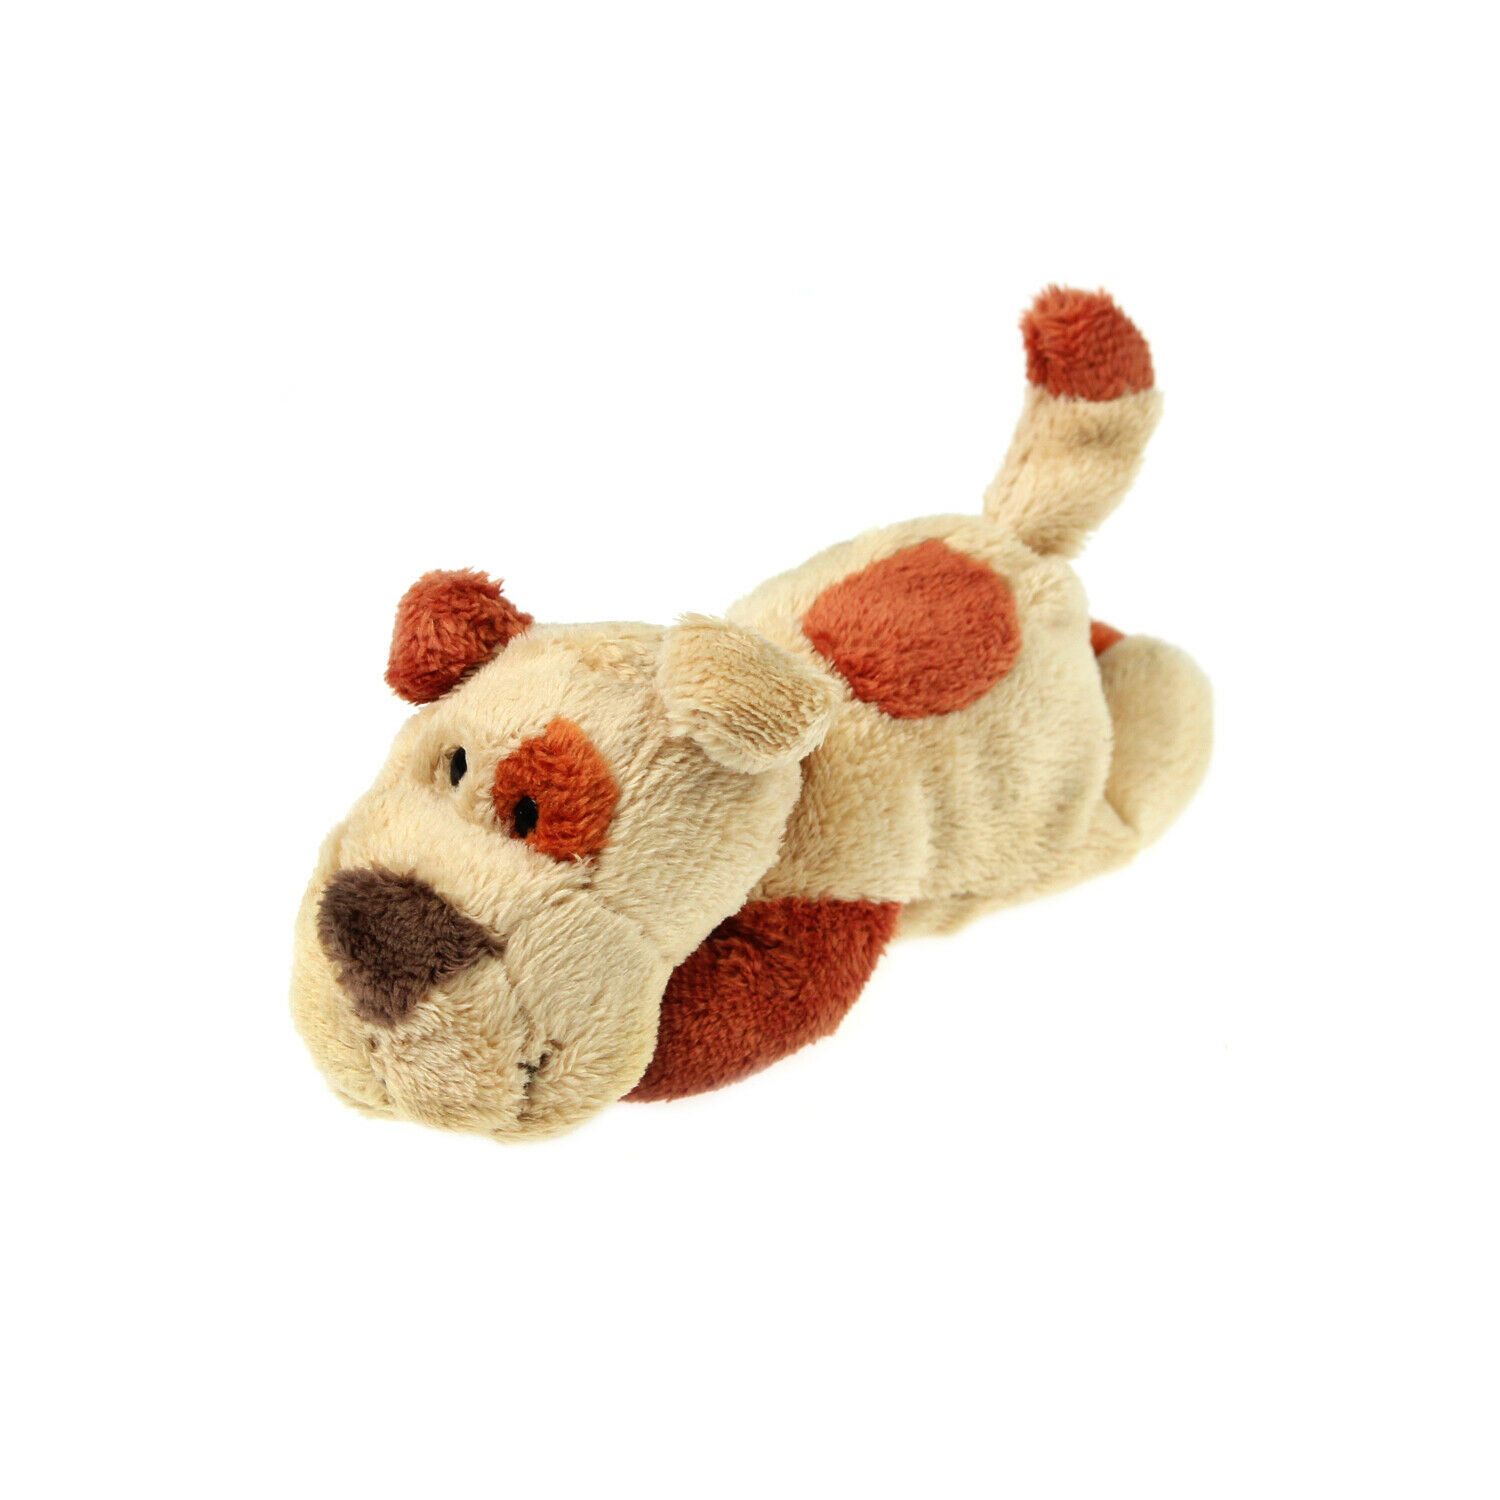 Primary image for MagNICI Dog Brown Stuffed Toy Animal Magnet in Paws 5 inches 12 cm